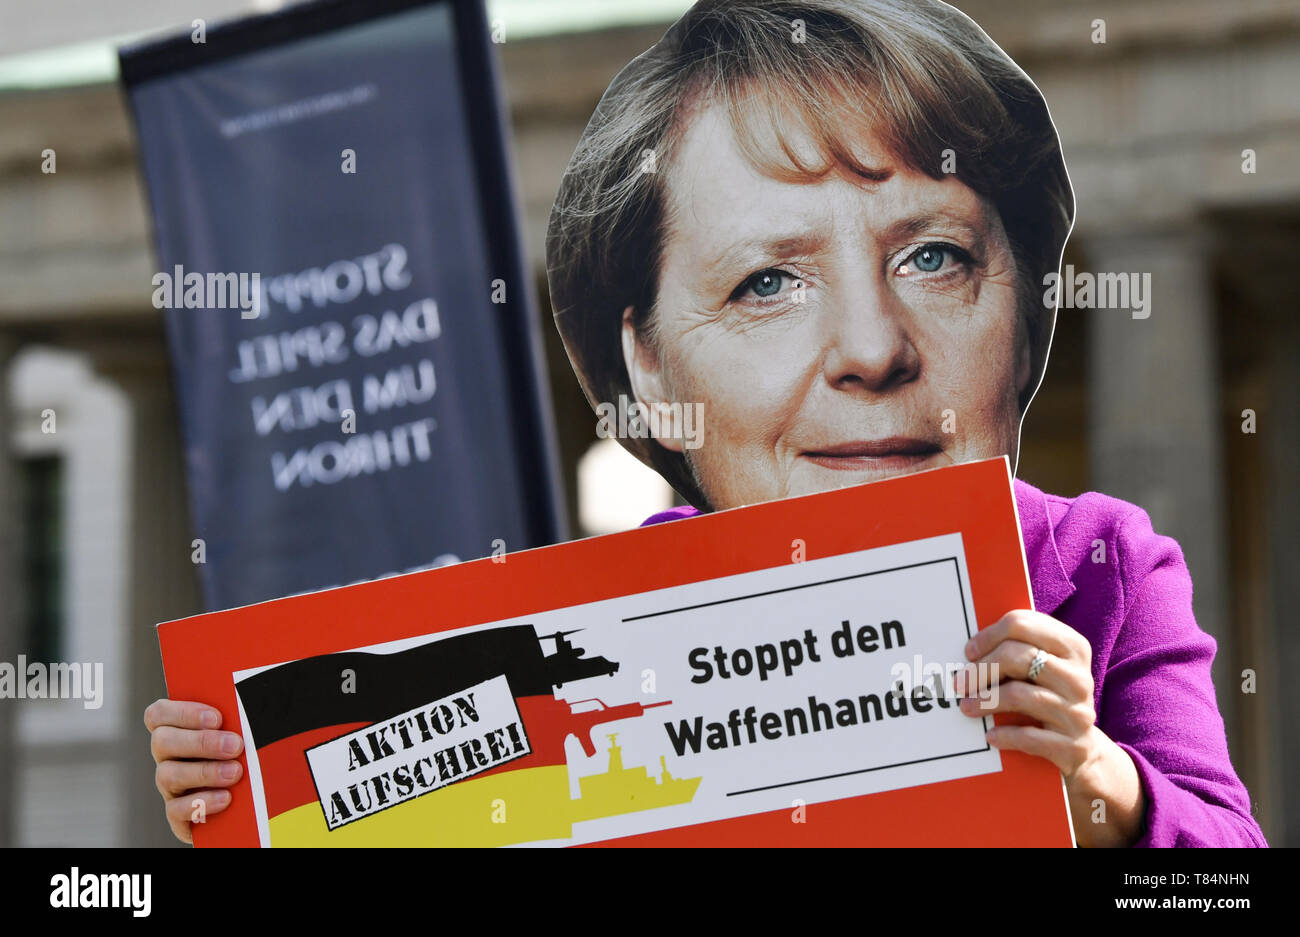 Berlin, Germany. 11th May, 2019. An activist with a mask by Federal Chancellor Angela Merkel stands in front of the Brandenburg Gate during an art action of the 'Aktion Aufschrei - Stoppt den Waffenhandel! The initiative protests against arms exports to warring parties in Yemen. Credit: Jens Kalaene/dpa-Zentralbild/dpa/Alamy Live News - Stock Image